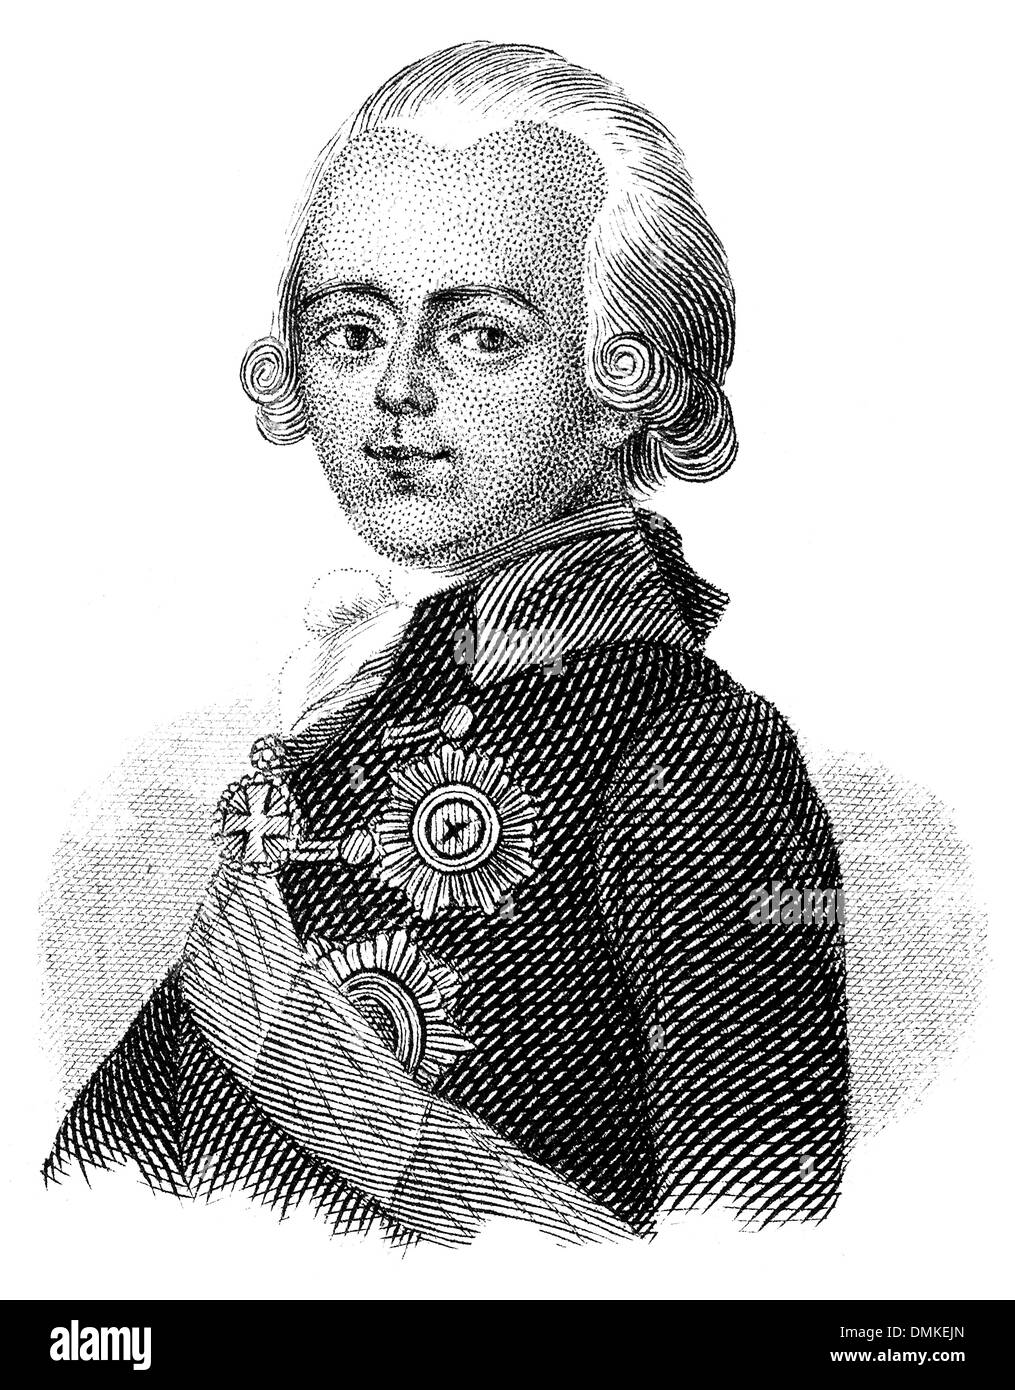 portrait of Paul I or Pavel Petrovich, 1754 - 1801, Emperor of Russia - Stock Image